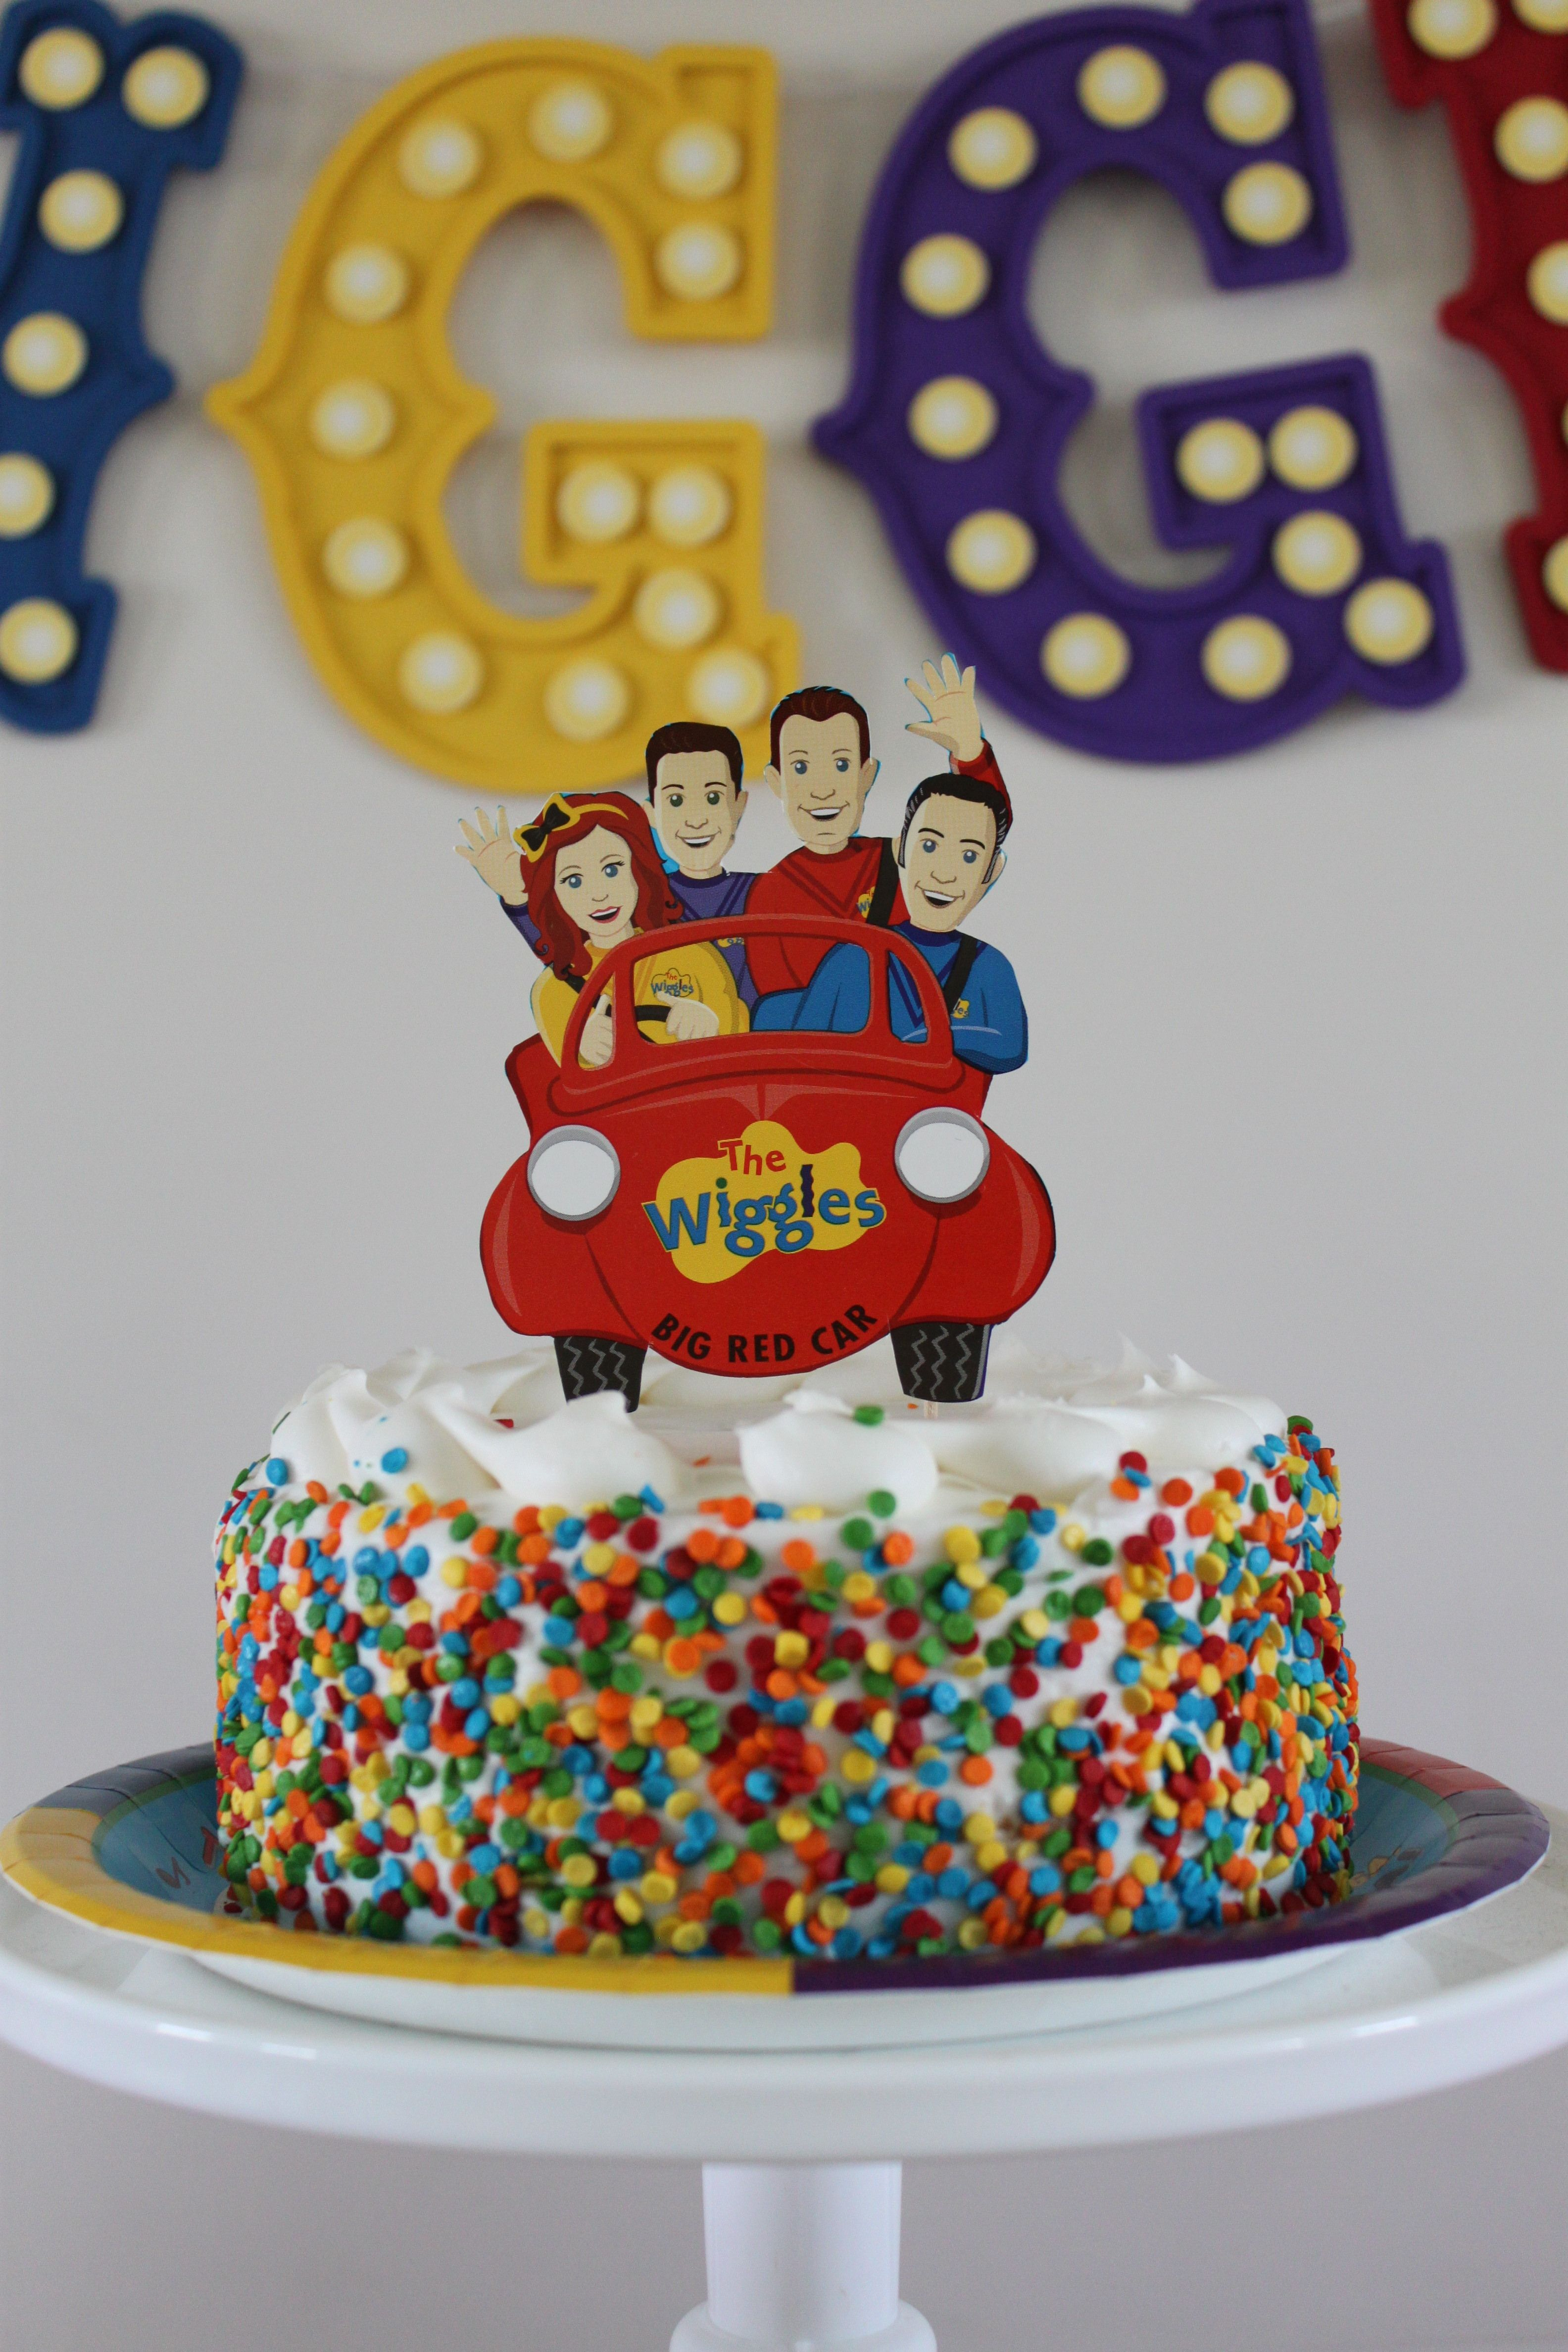 Groovy Bright Sprinkles And A Cake Topper Featuring The Wiggles Elevates Birthday Cards Printable Opercafe Filternl